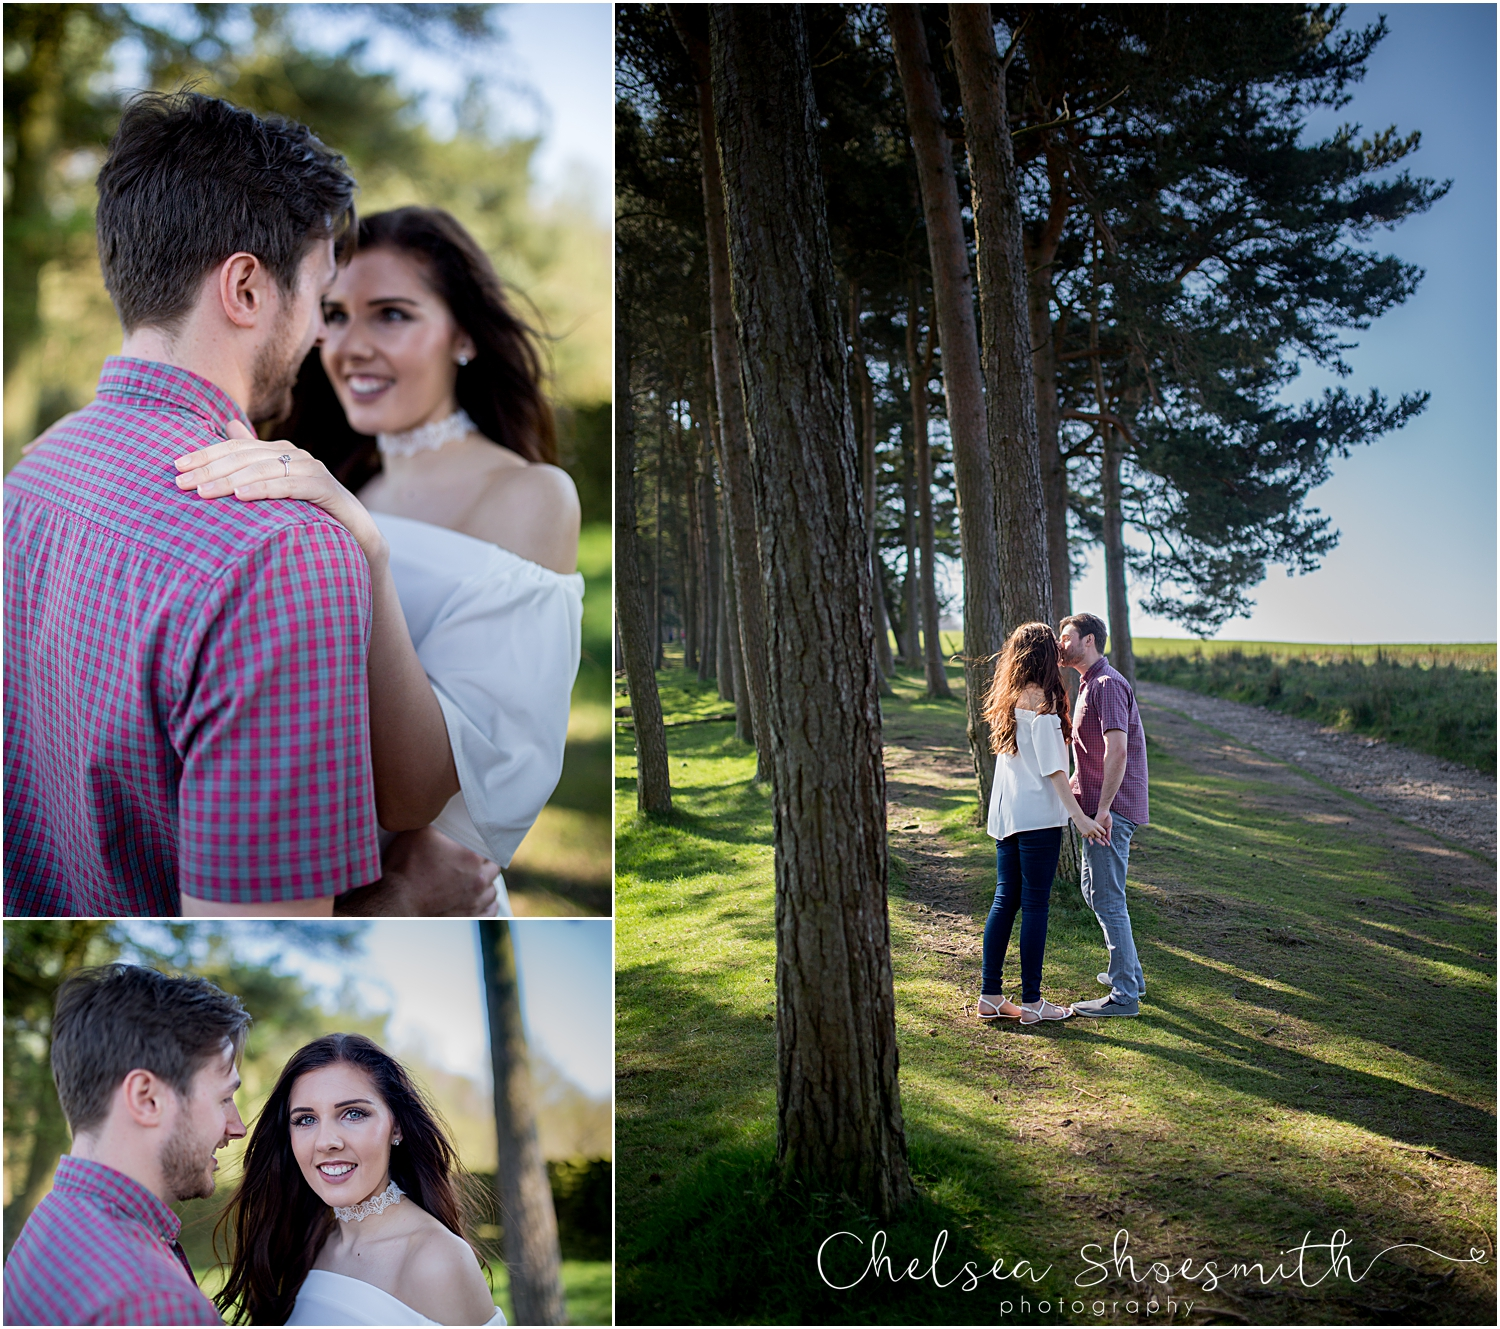 Chelsea Shoesmith Photography